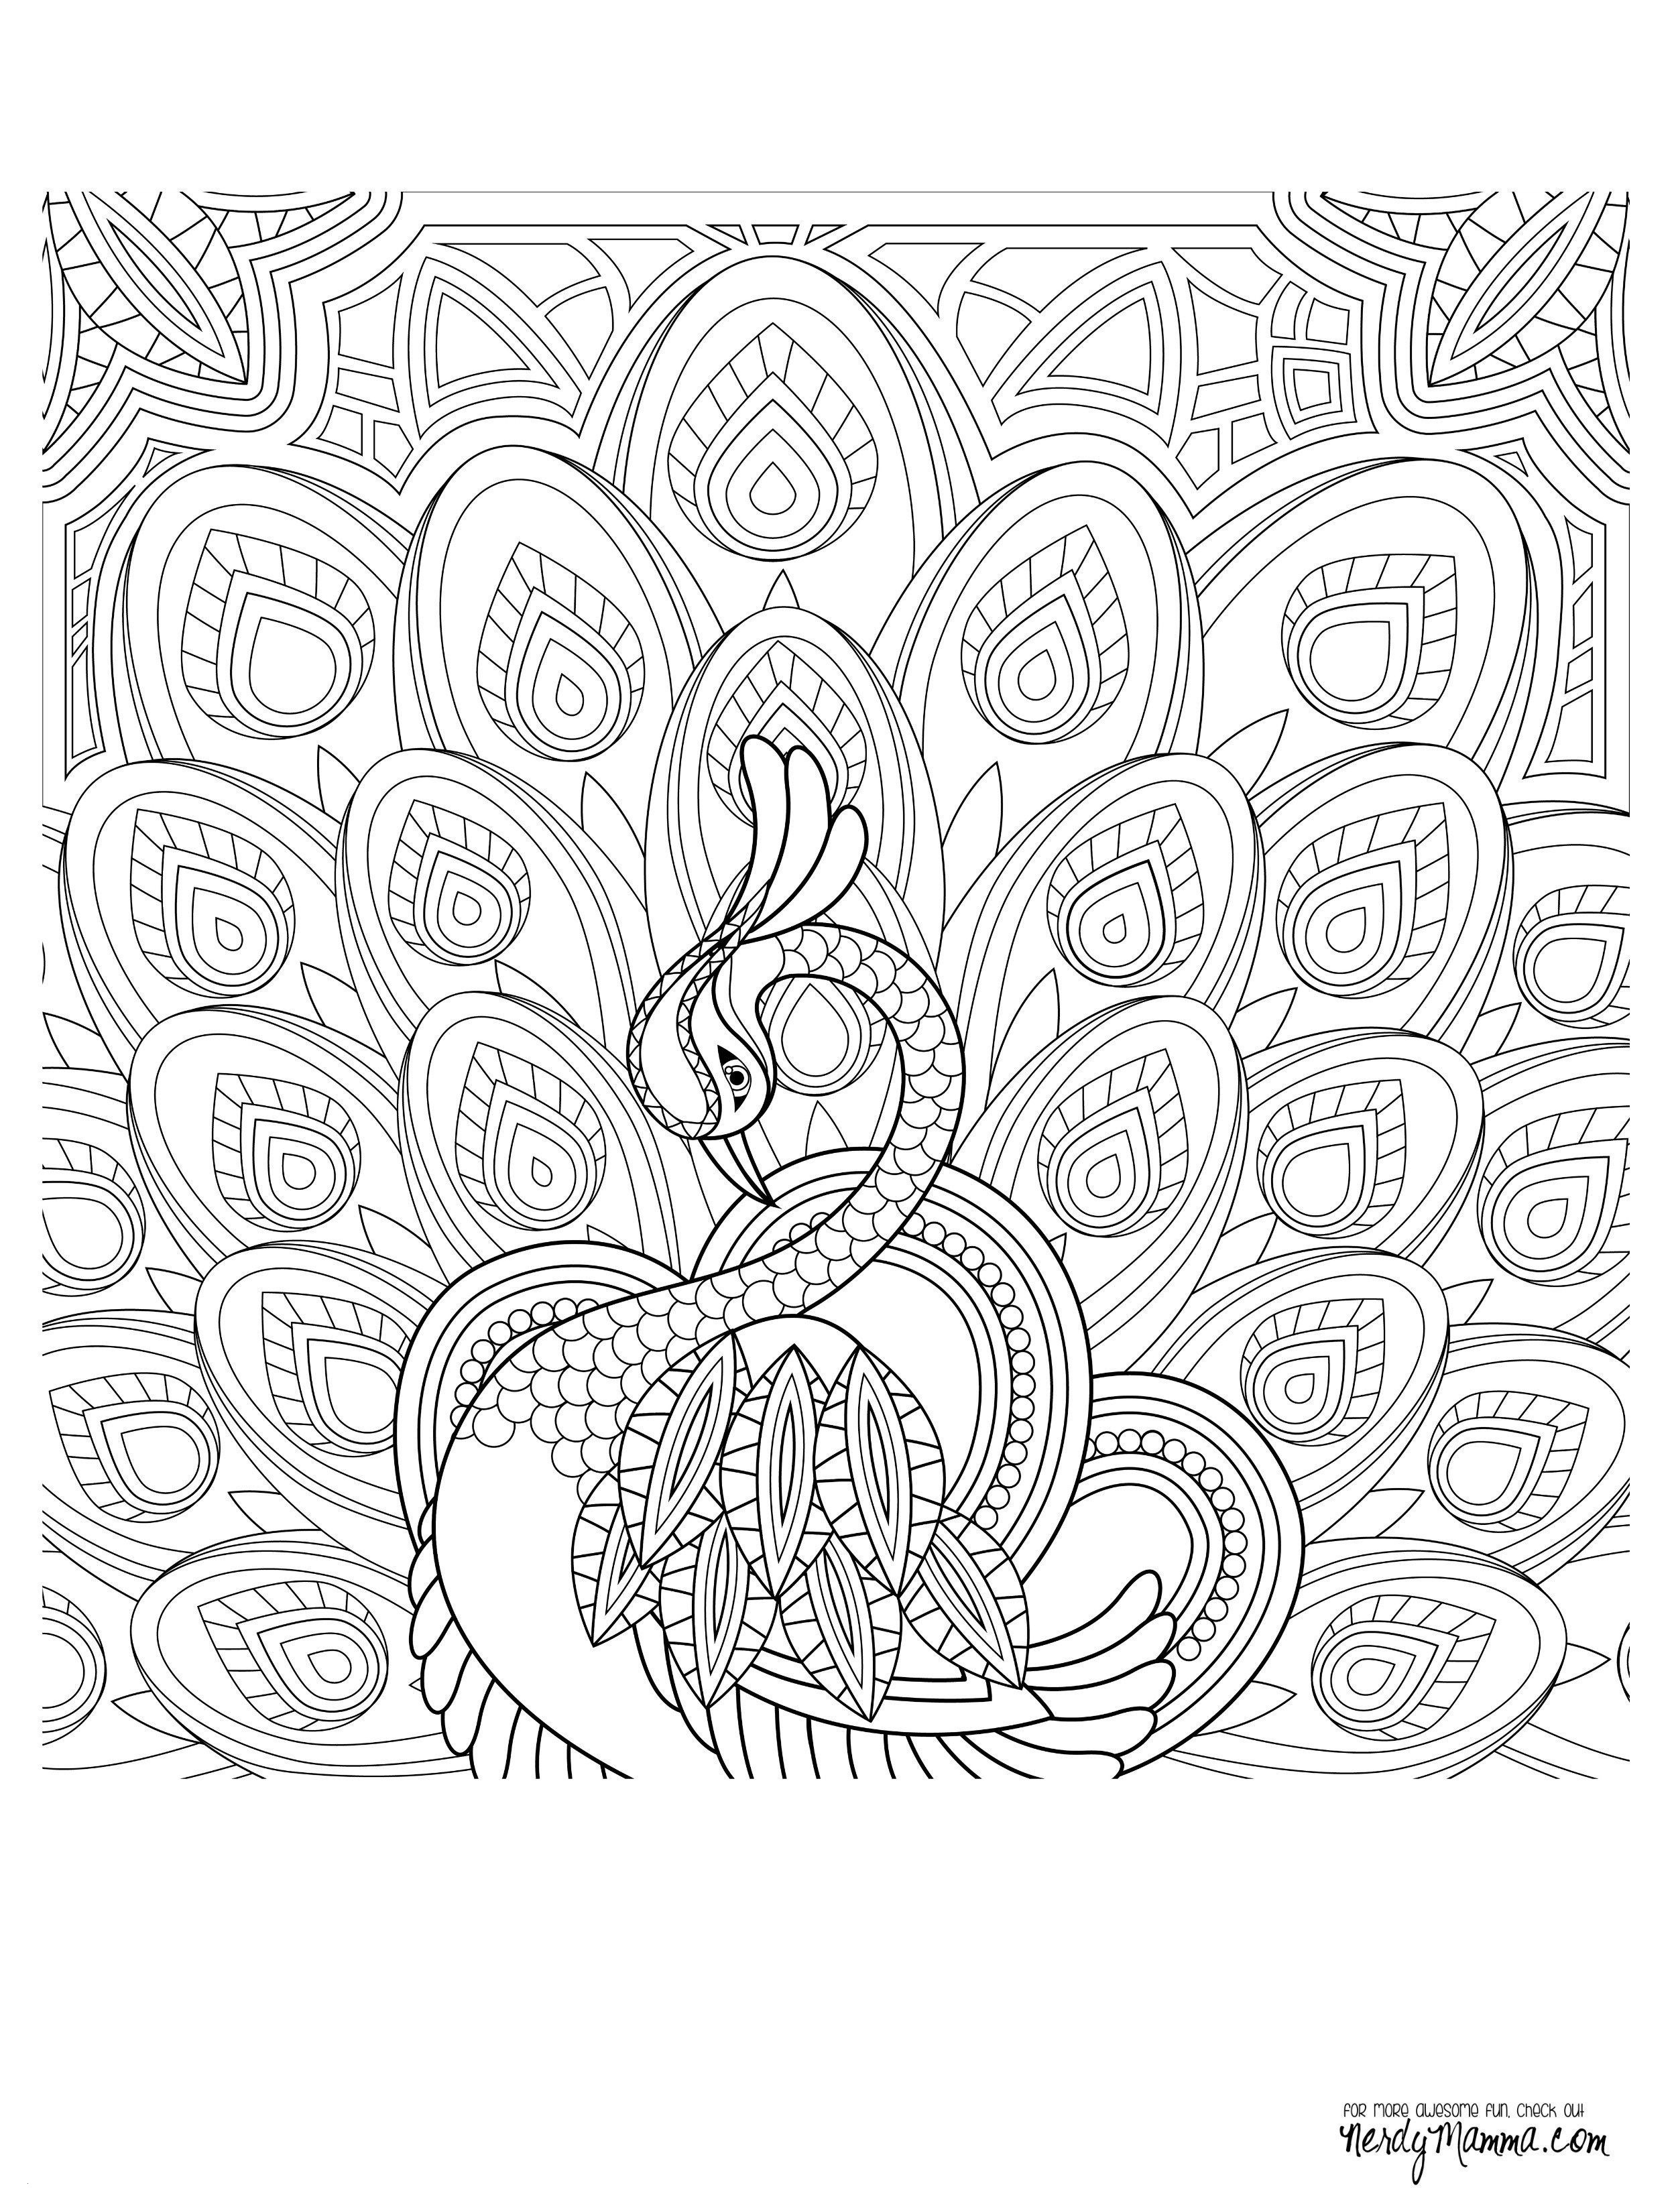 Texas Coloring Pages to Print  Download 18e - Free Download